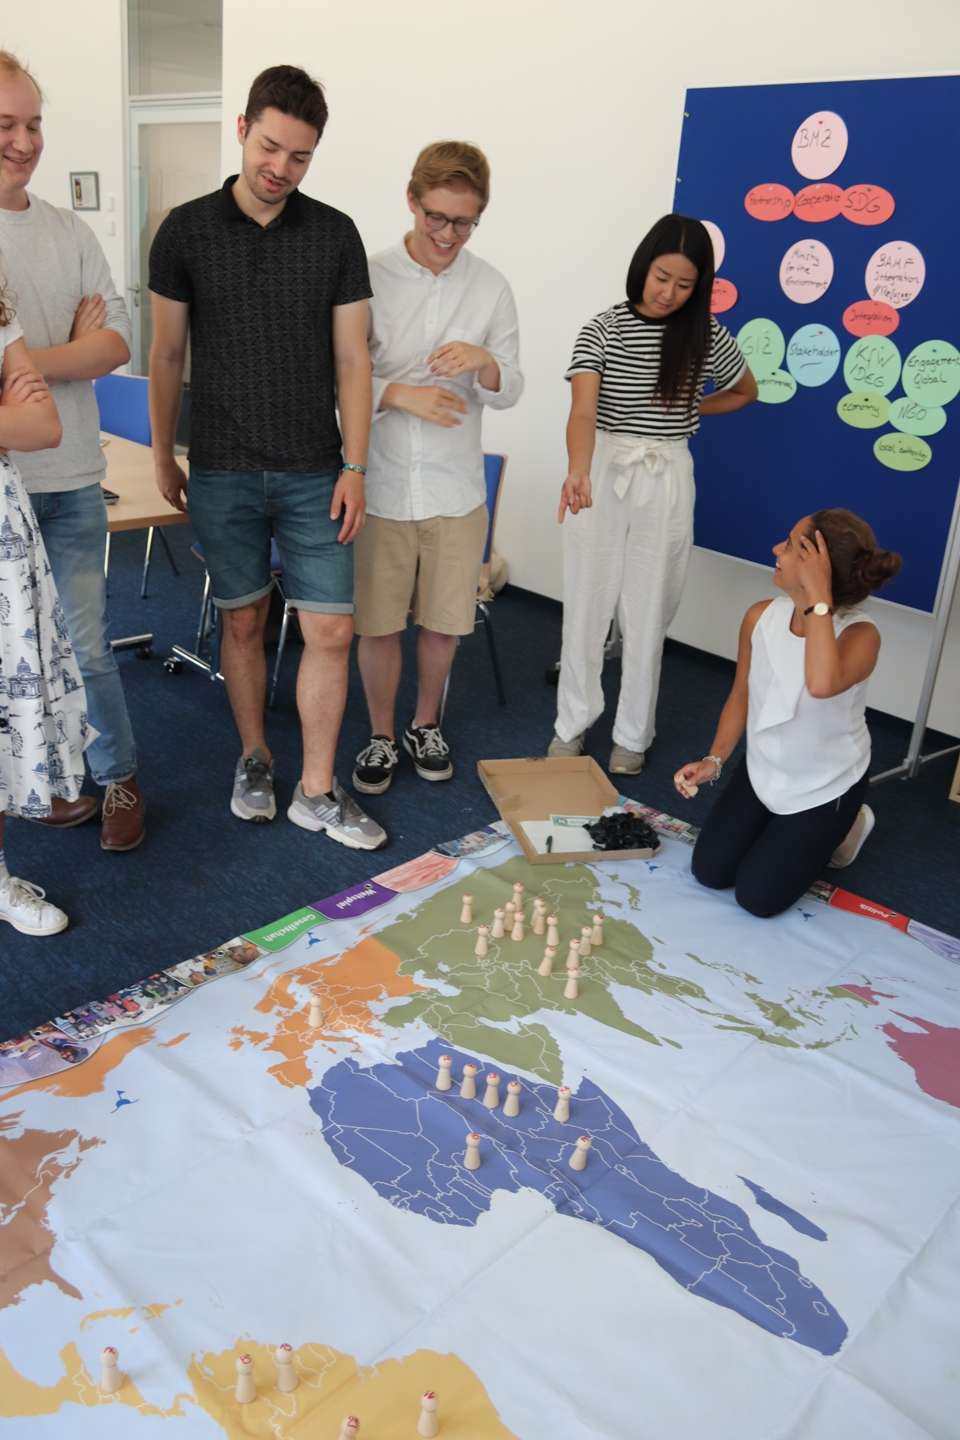 Students playing a game on a big worldmap on the floor.